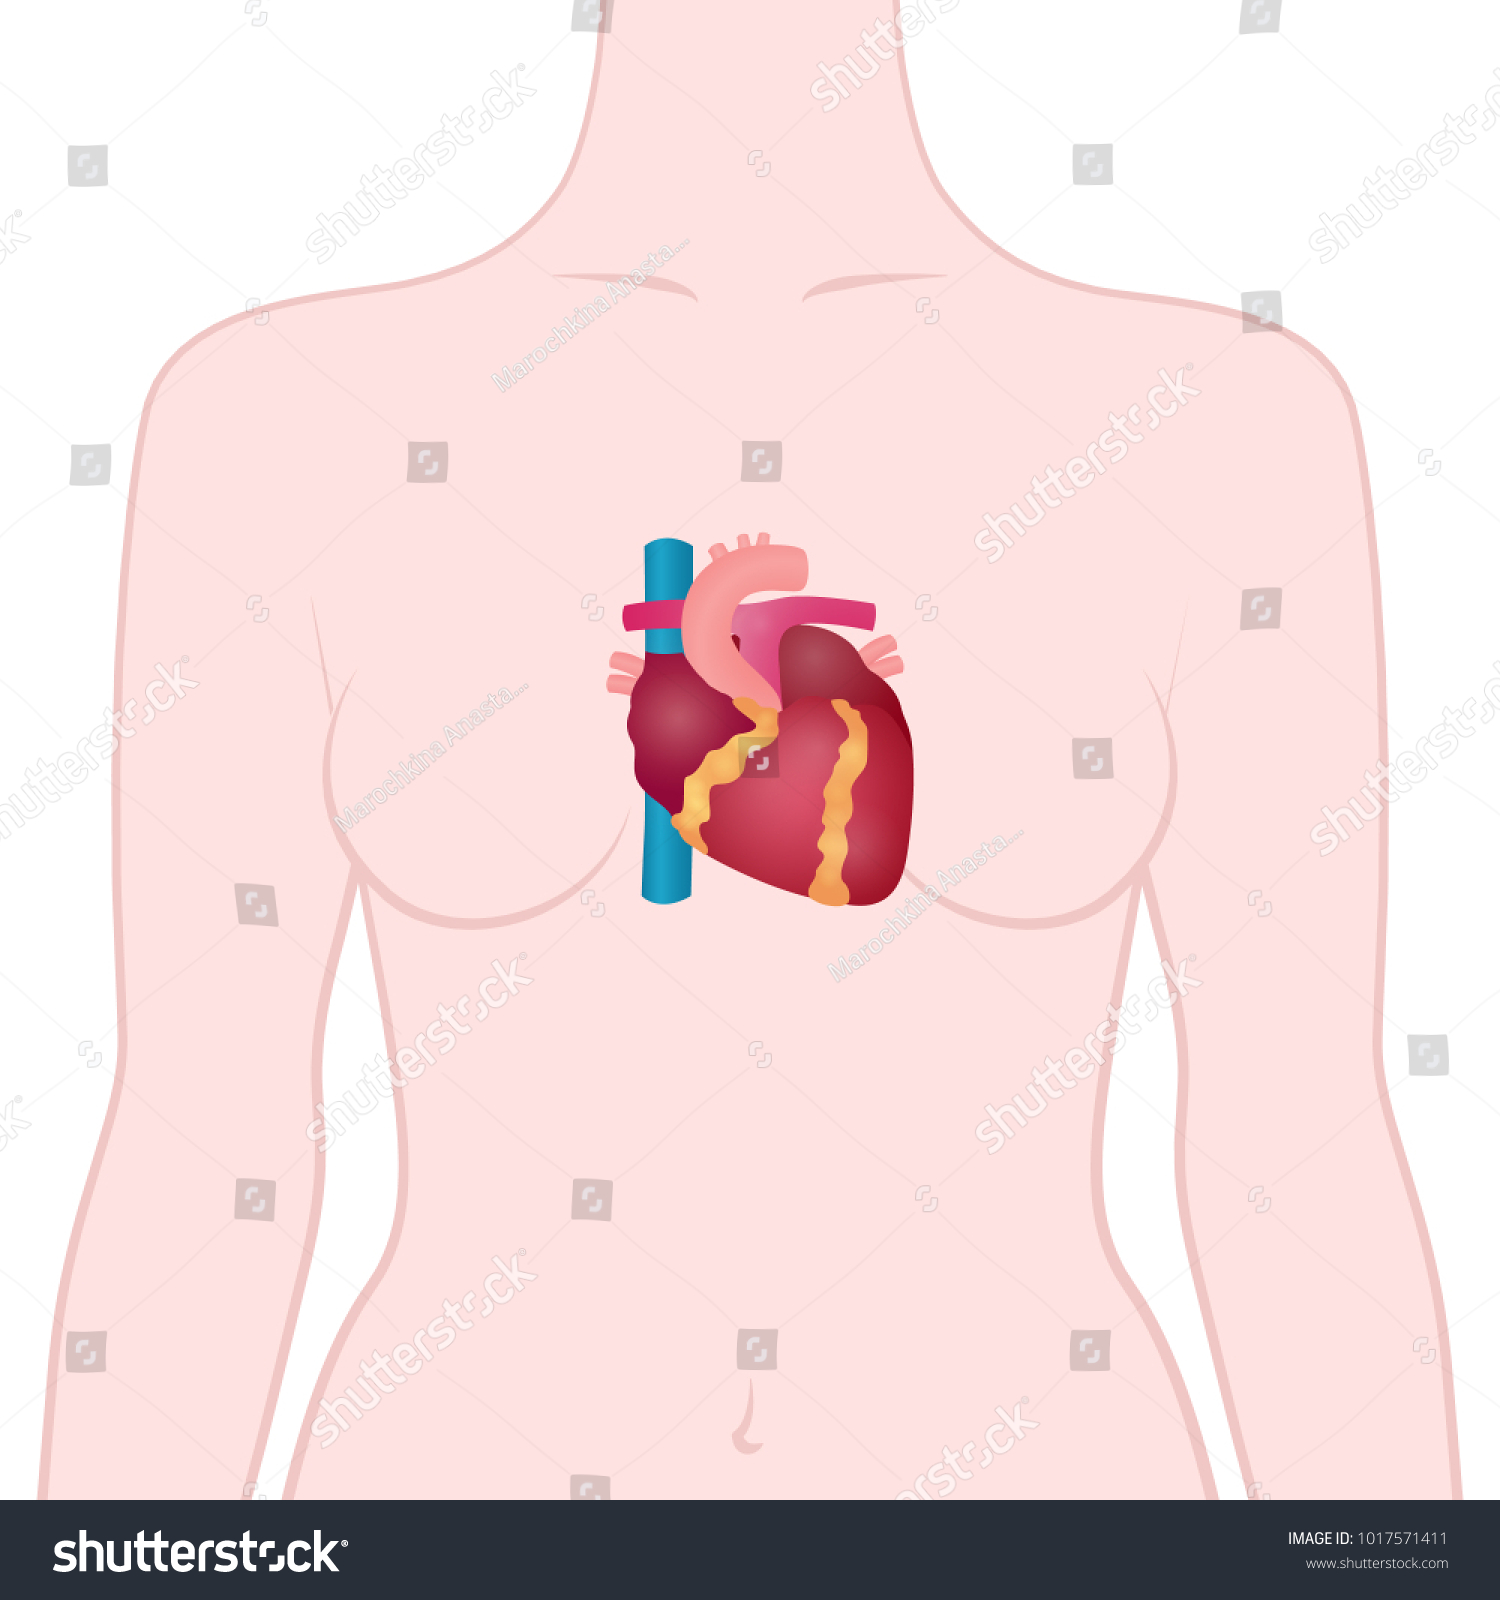 Anatomy human heart location heart human stock vector 1017571411 anatomy of the human heart the location of the heart in the human body ccuart